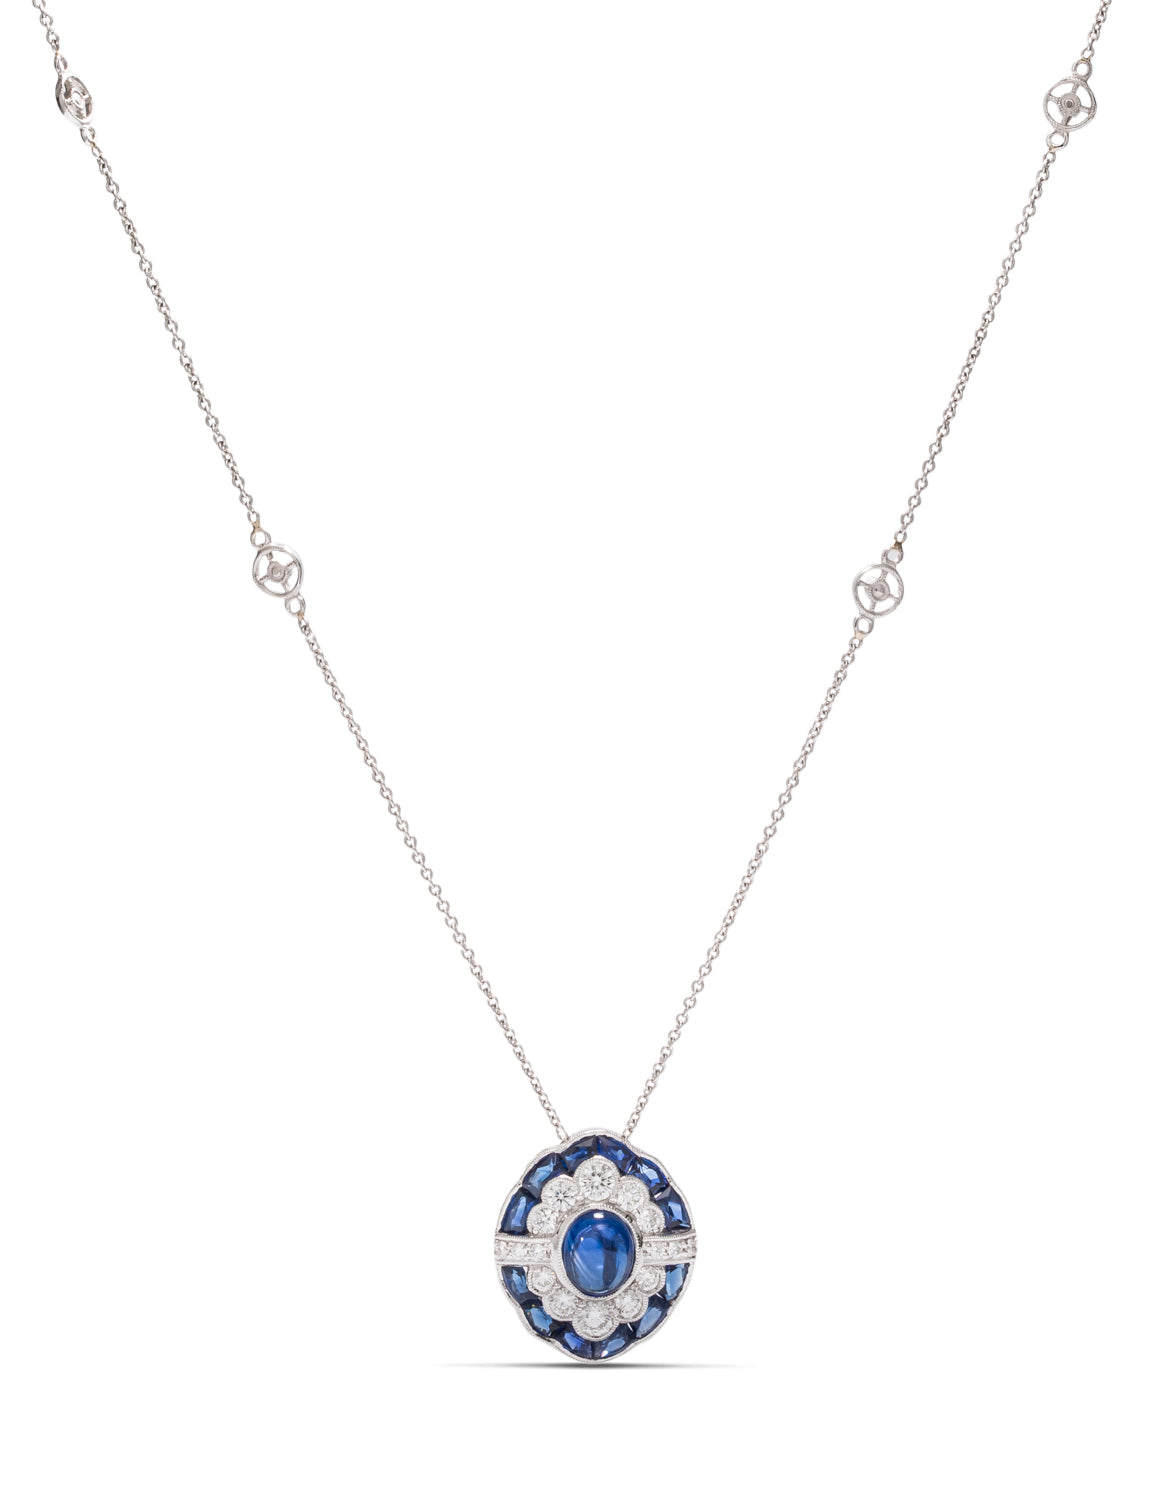 Antique Style Sapphire and Diamond Pendant - Charles Koll Jewellers